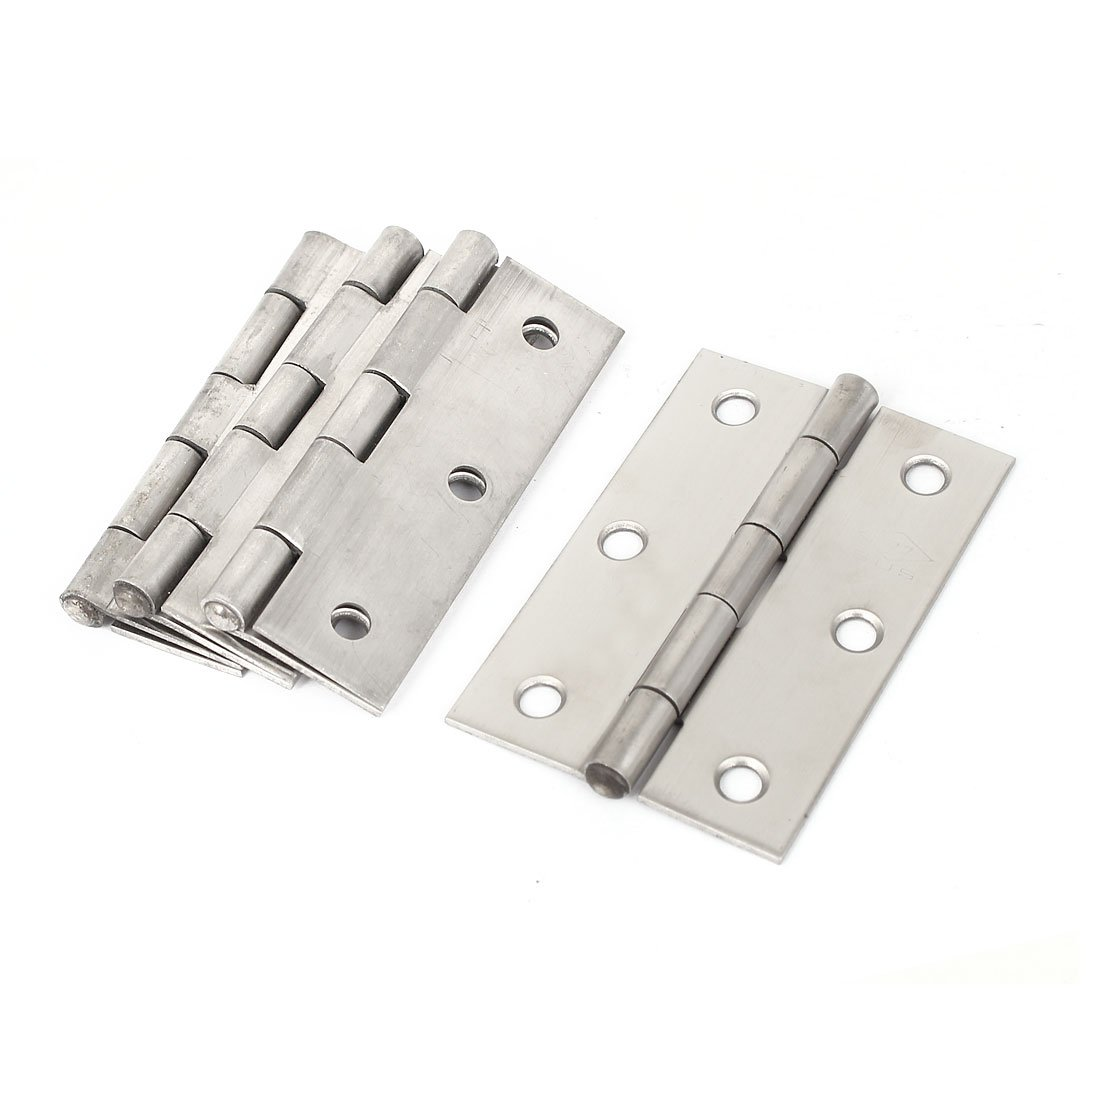 uxcell Cabinet Gate Closet Door 3-inch Long Stainless Steel Butt Hinge 4pcs